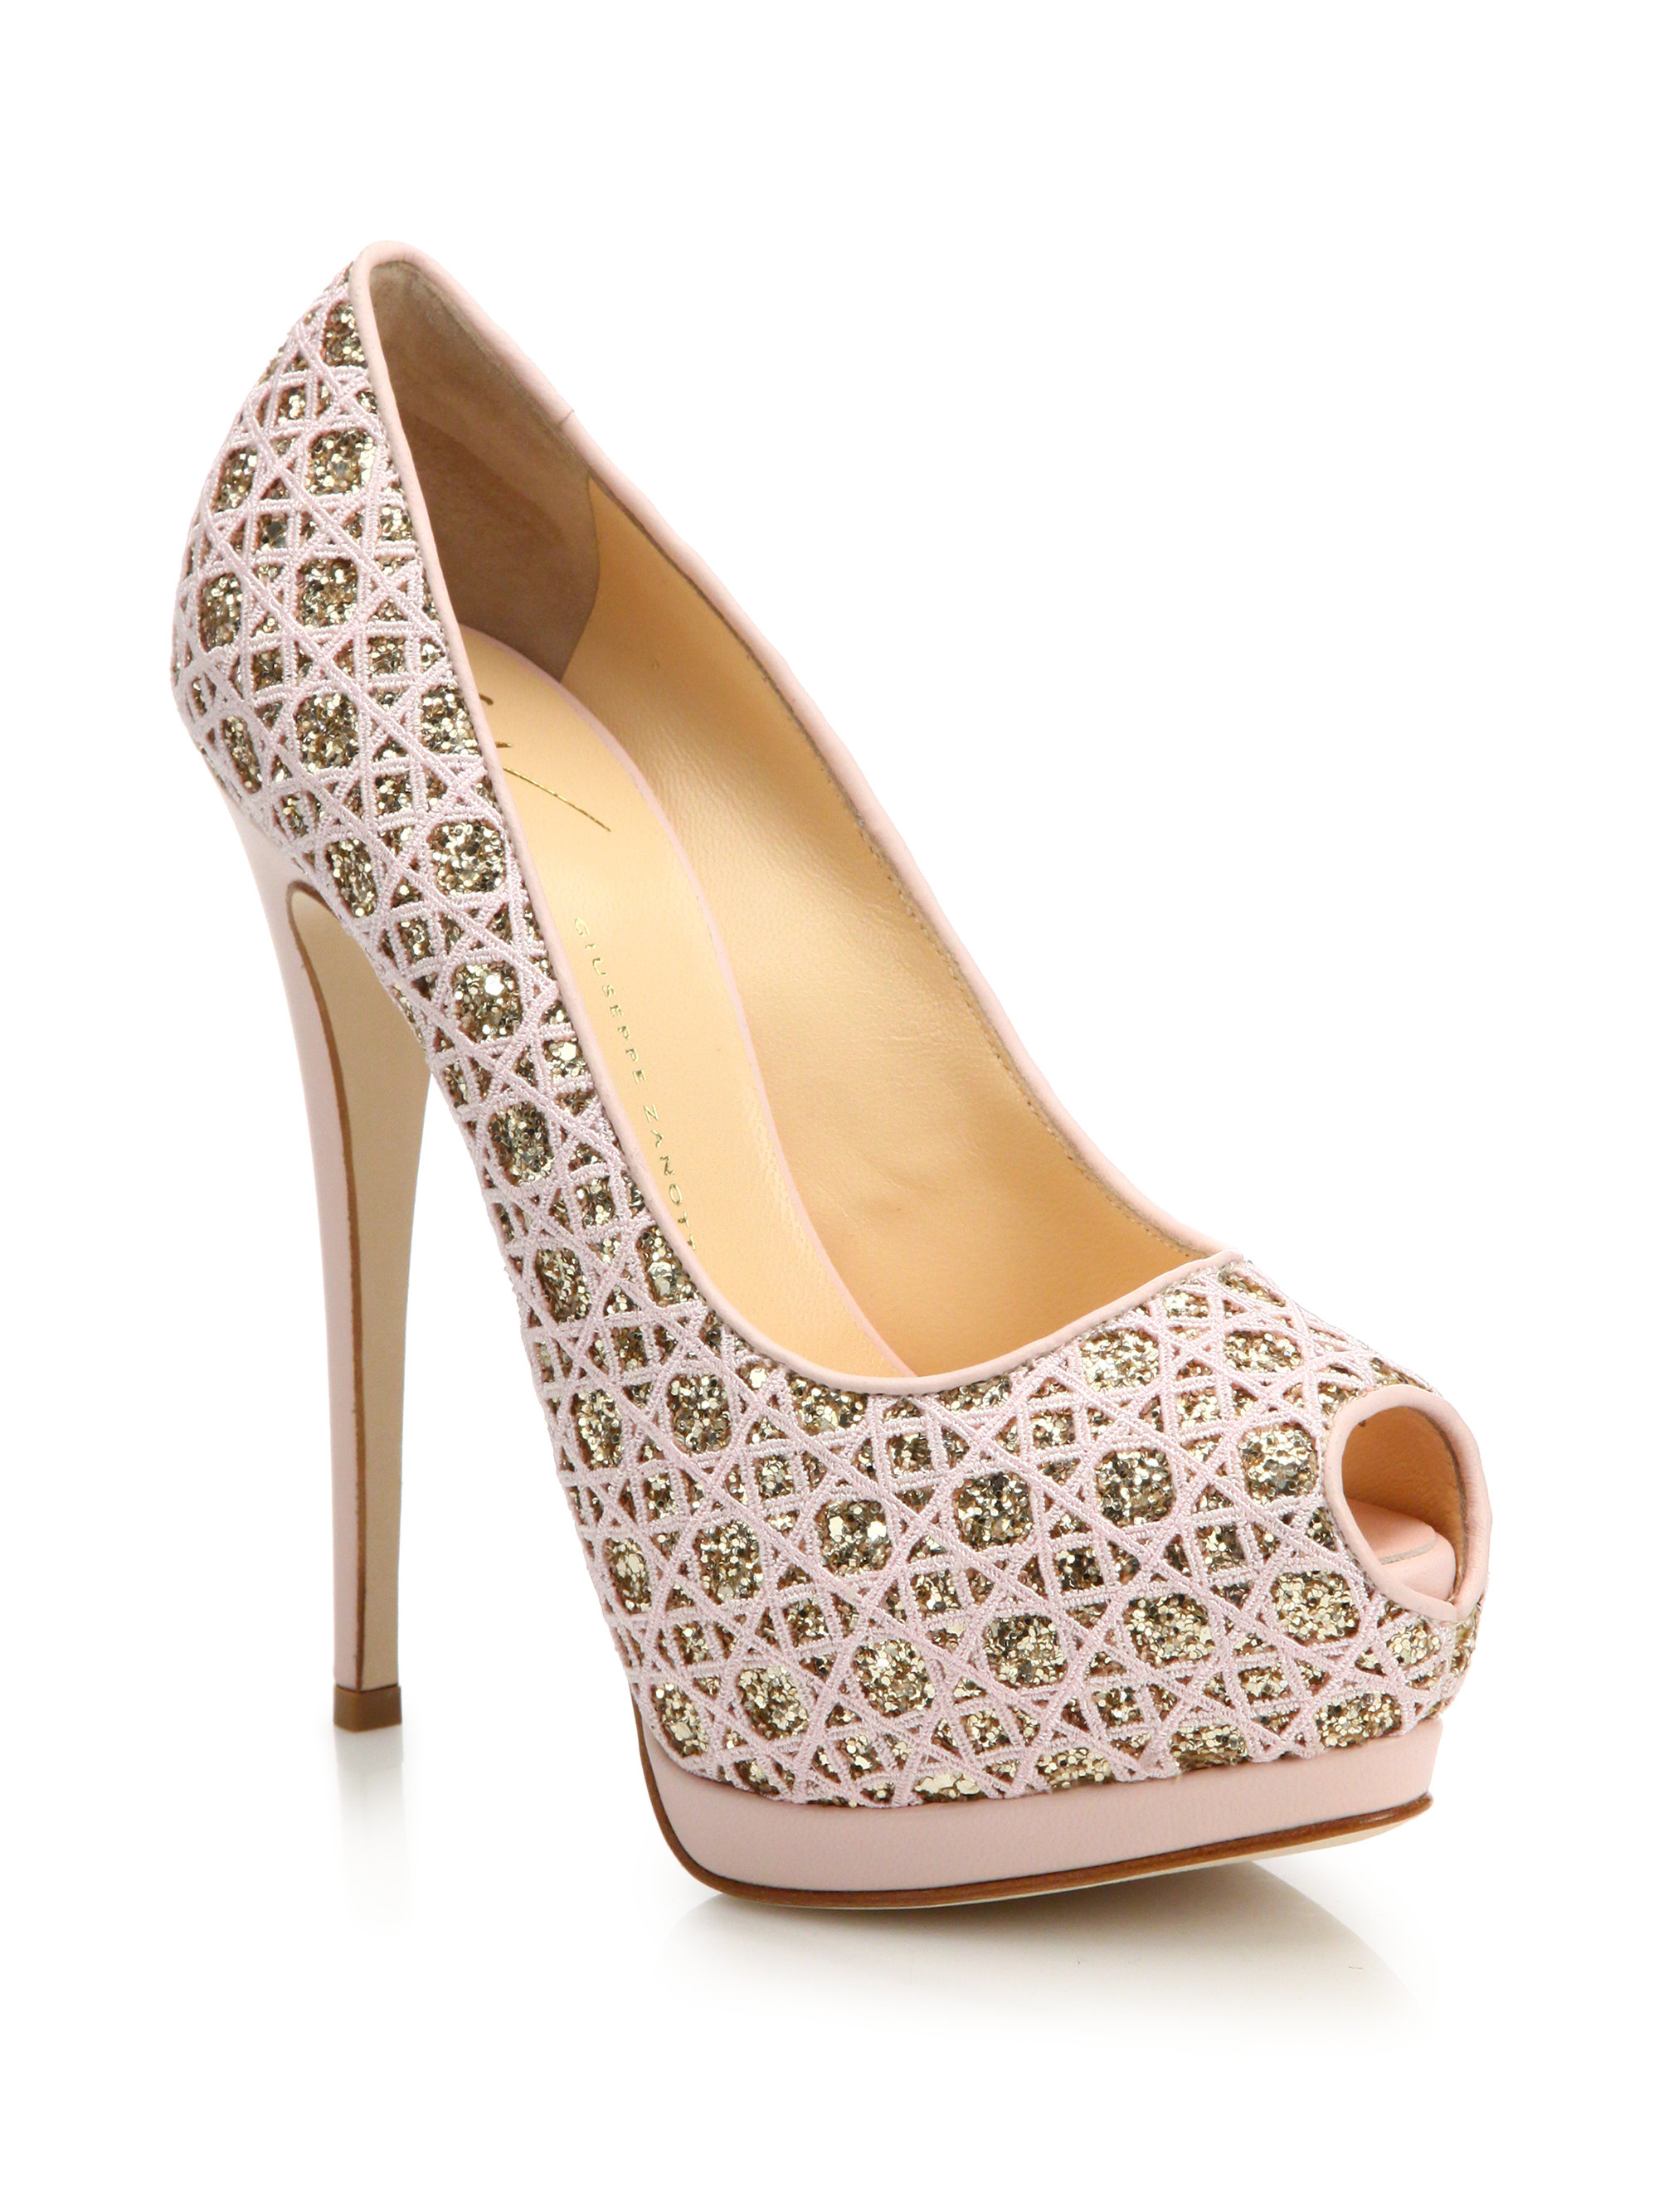 new styles cheap online buy cheap top quality Giuseppe Zanotti Bow Accented Pointed-Toe Pumps EaZCi